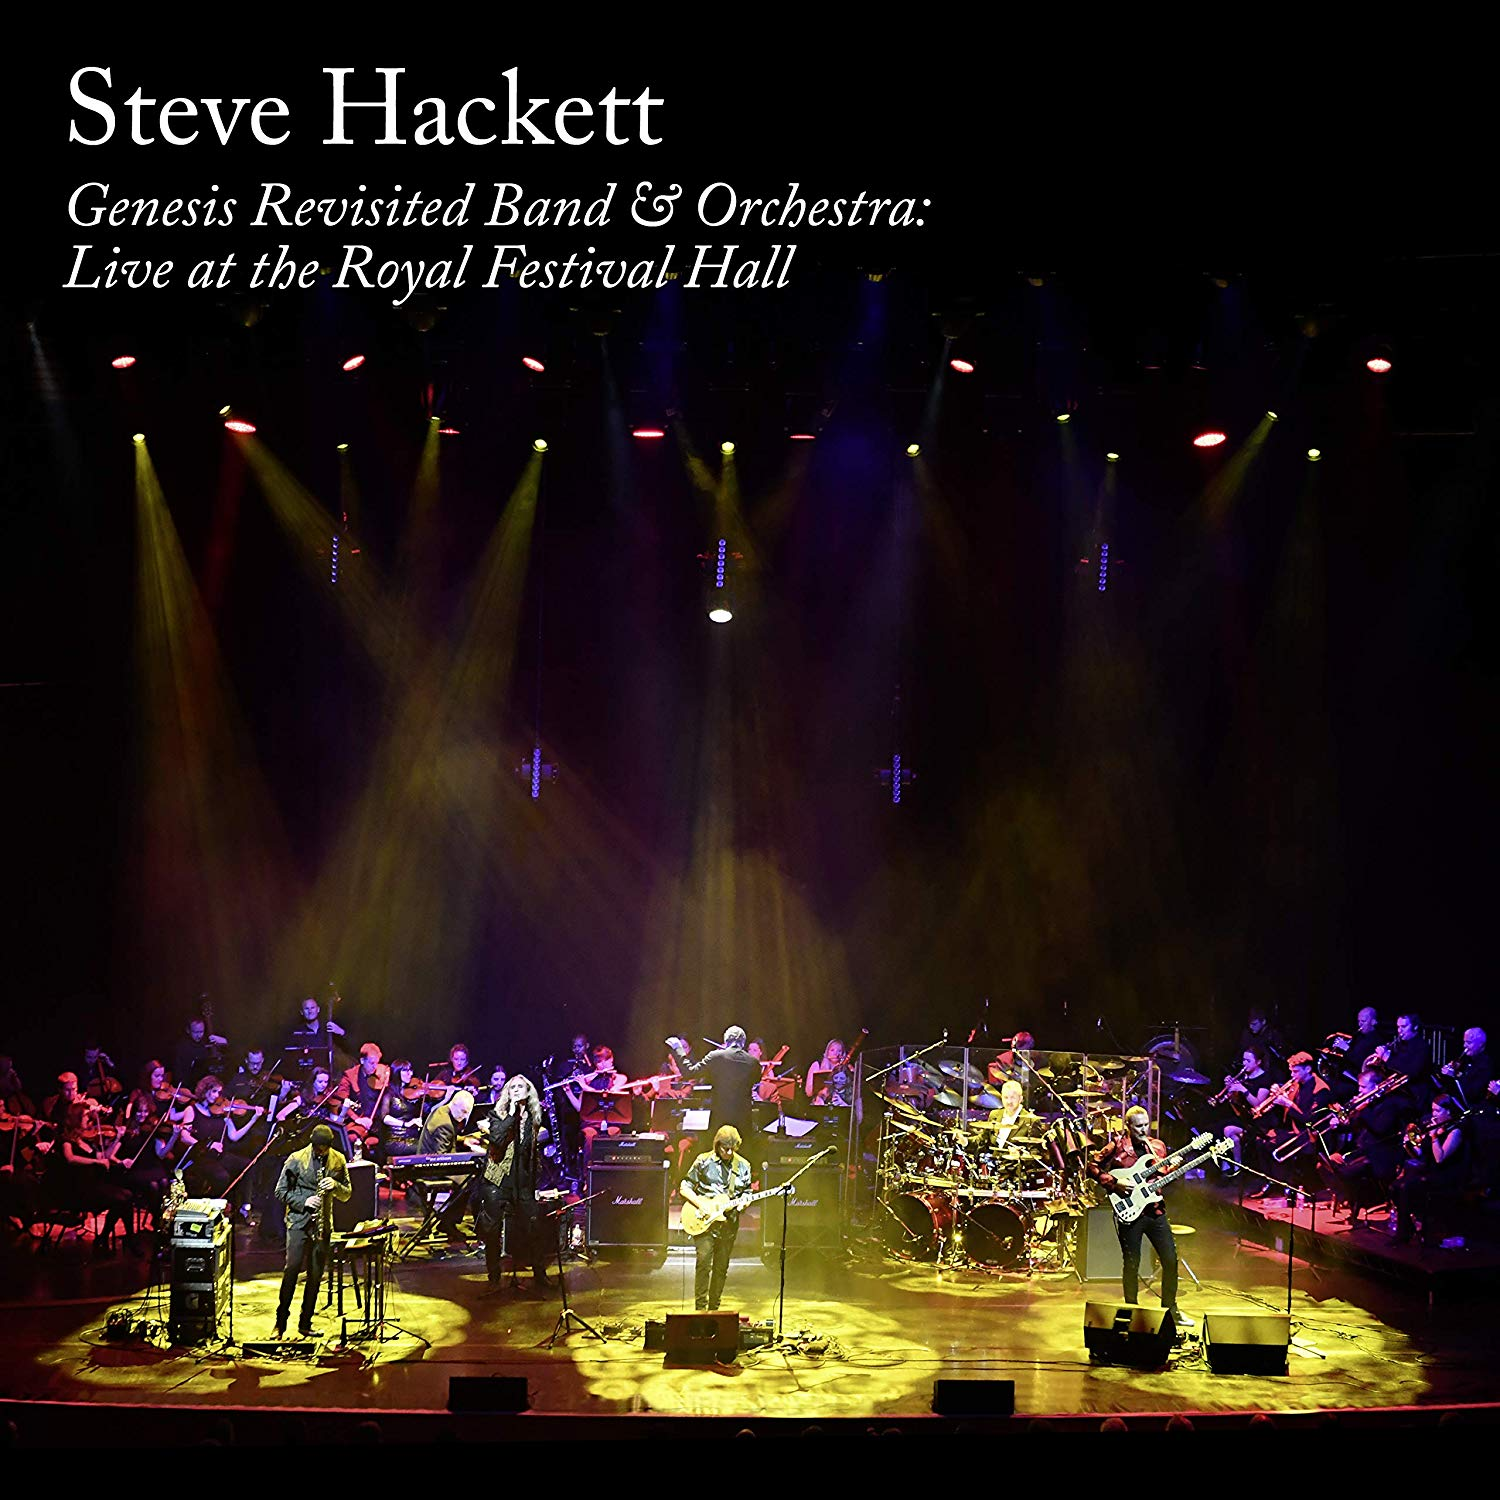 steve hackett mit orchester und chor in wuppertal 17 18. Black Bedroom Furniture Sets. Home Design Ideas